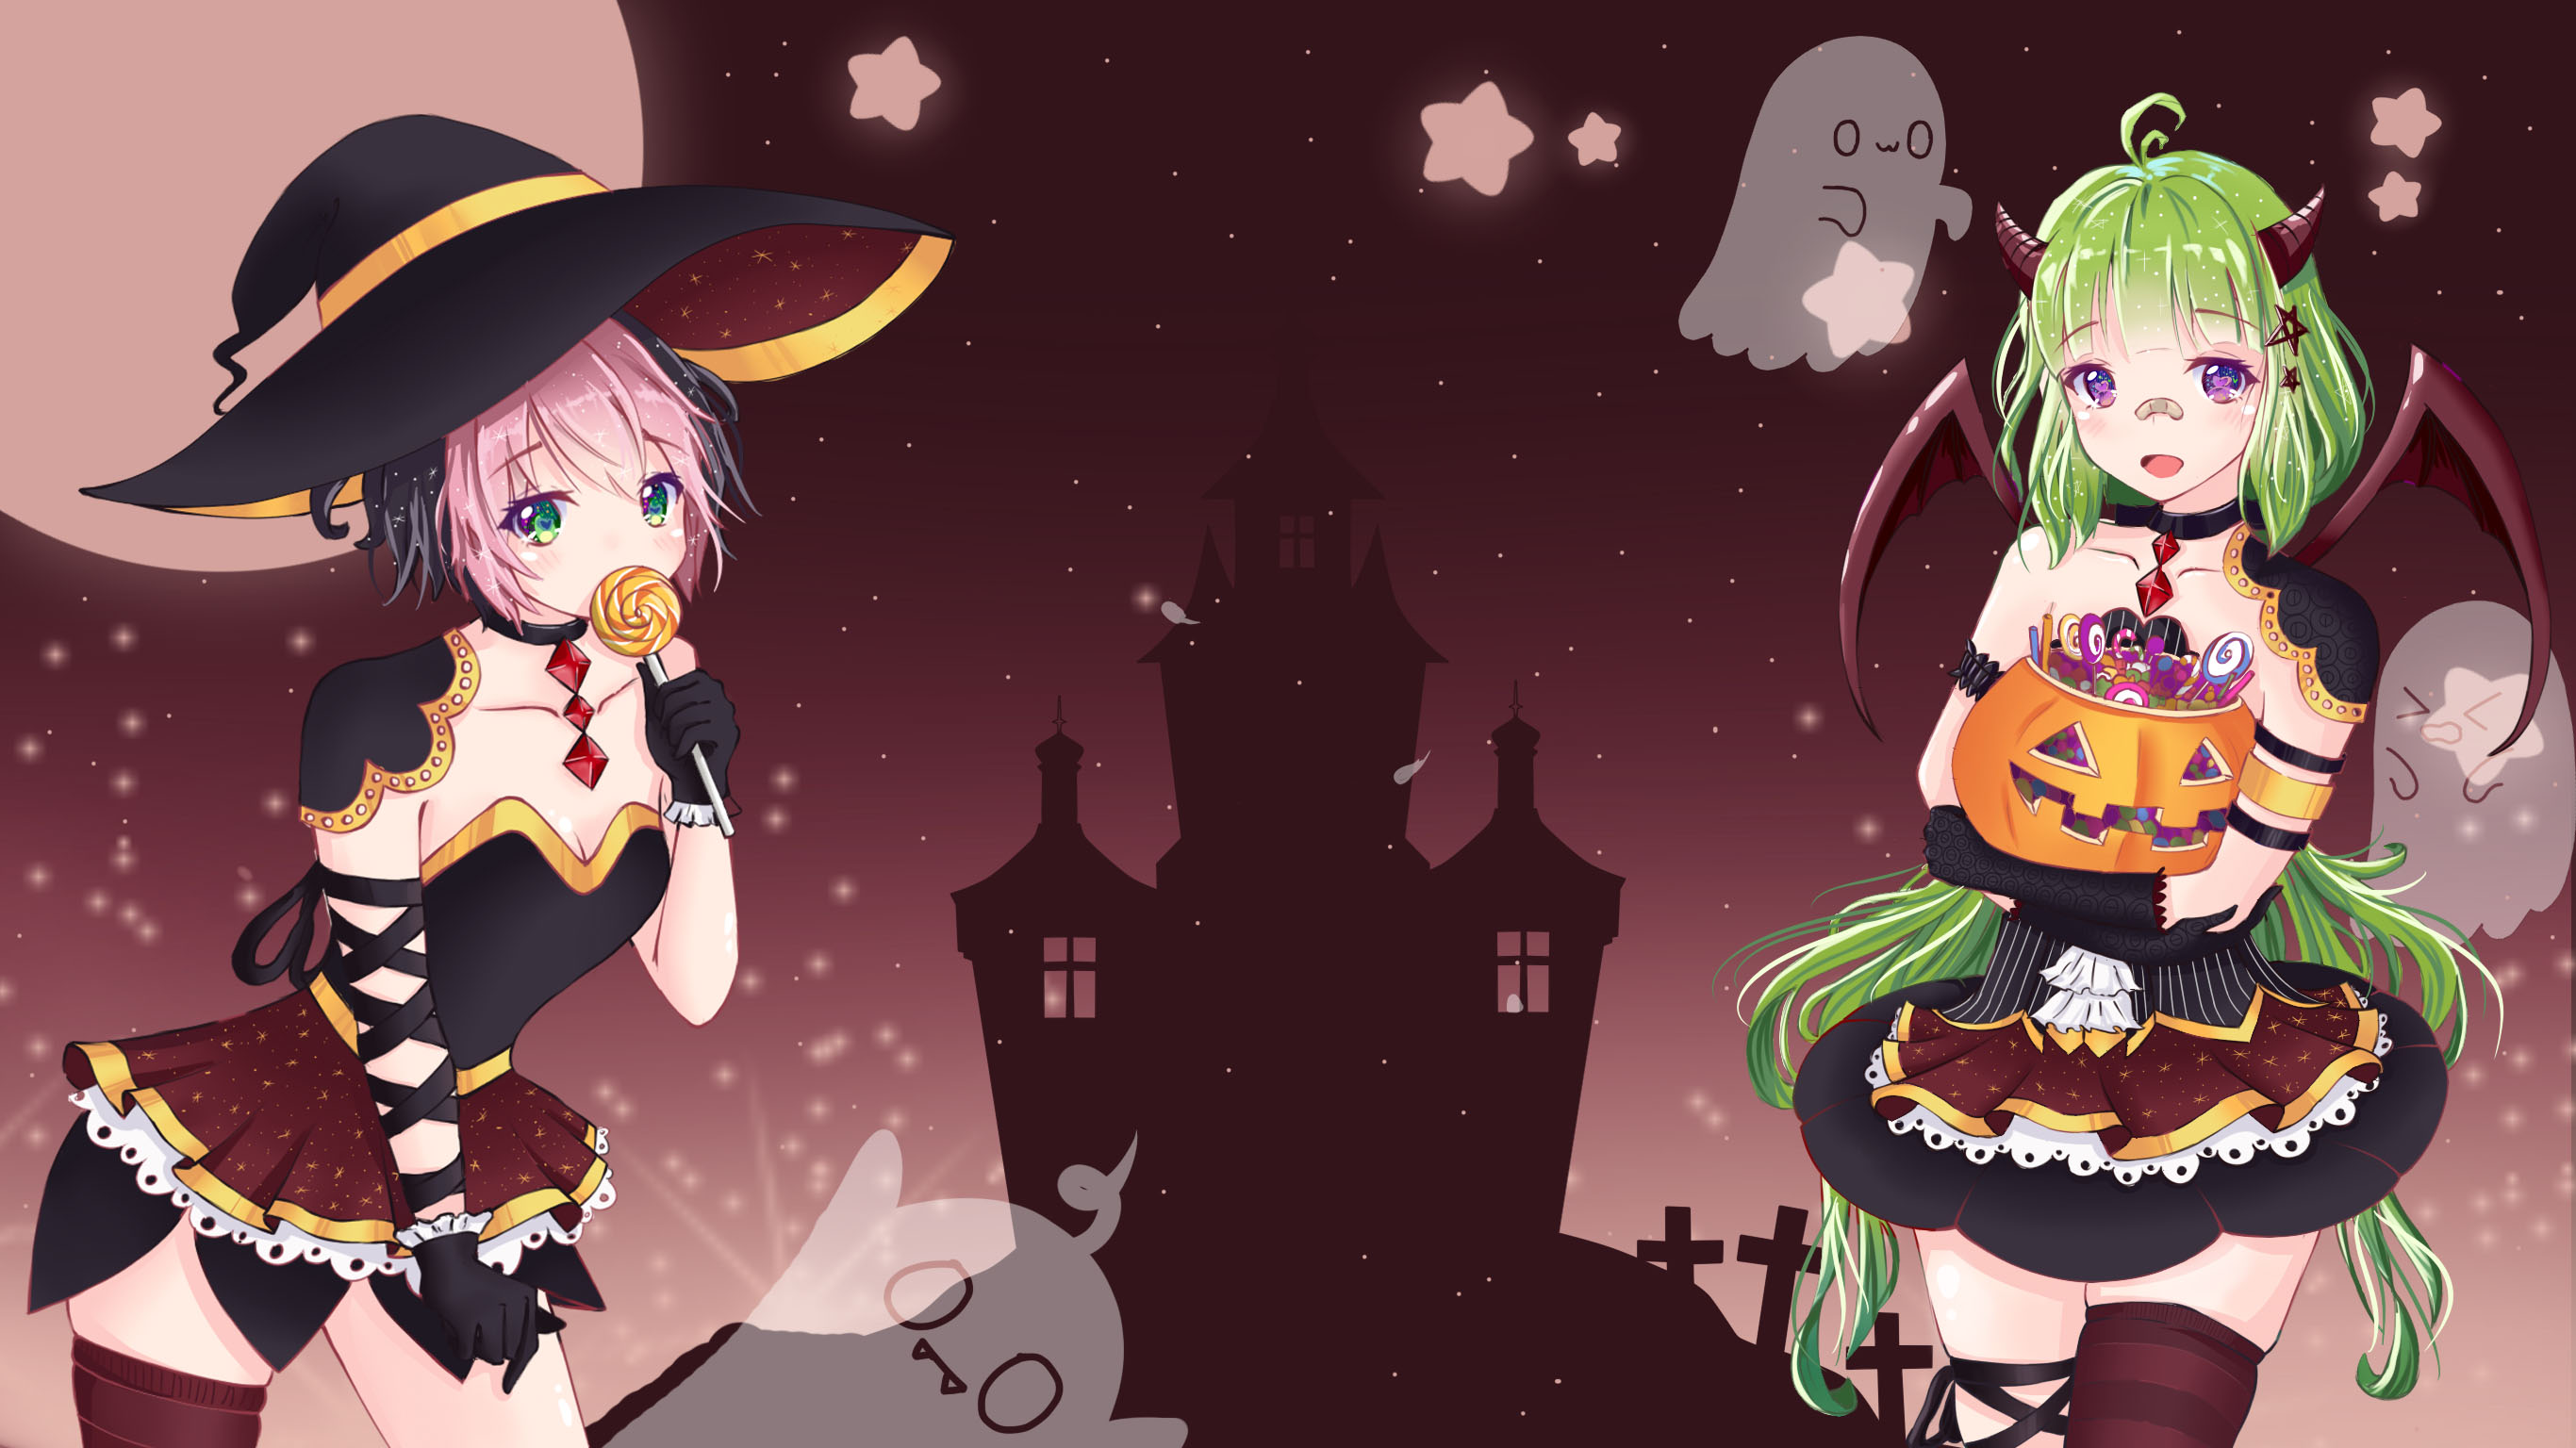 home › news: Halloween Descends